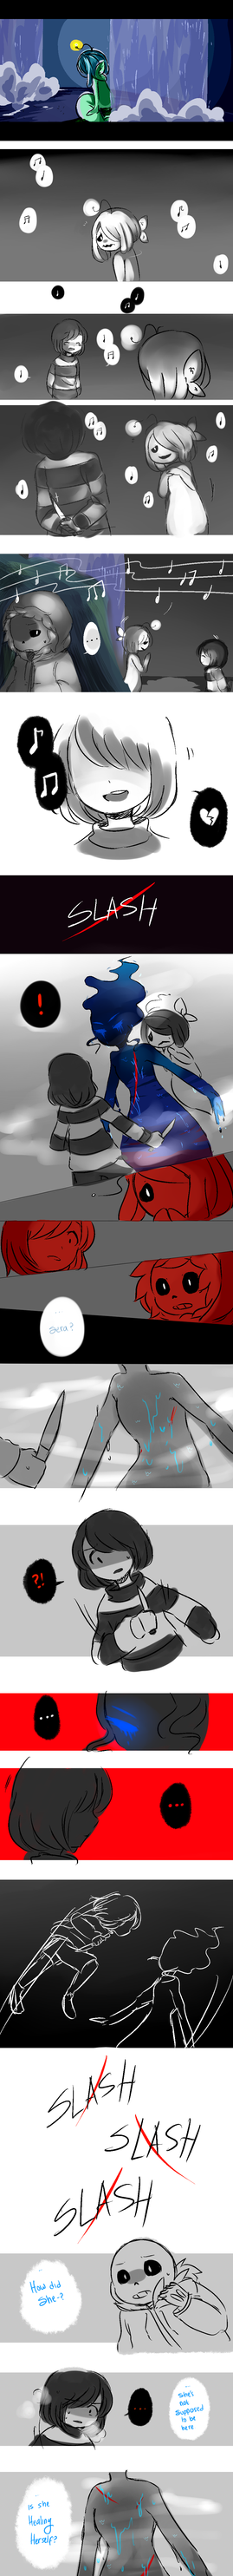 .: Too Late : Page 7 :. by Finni-NF